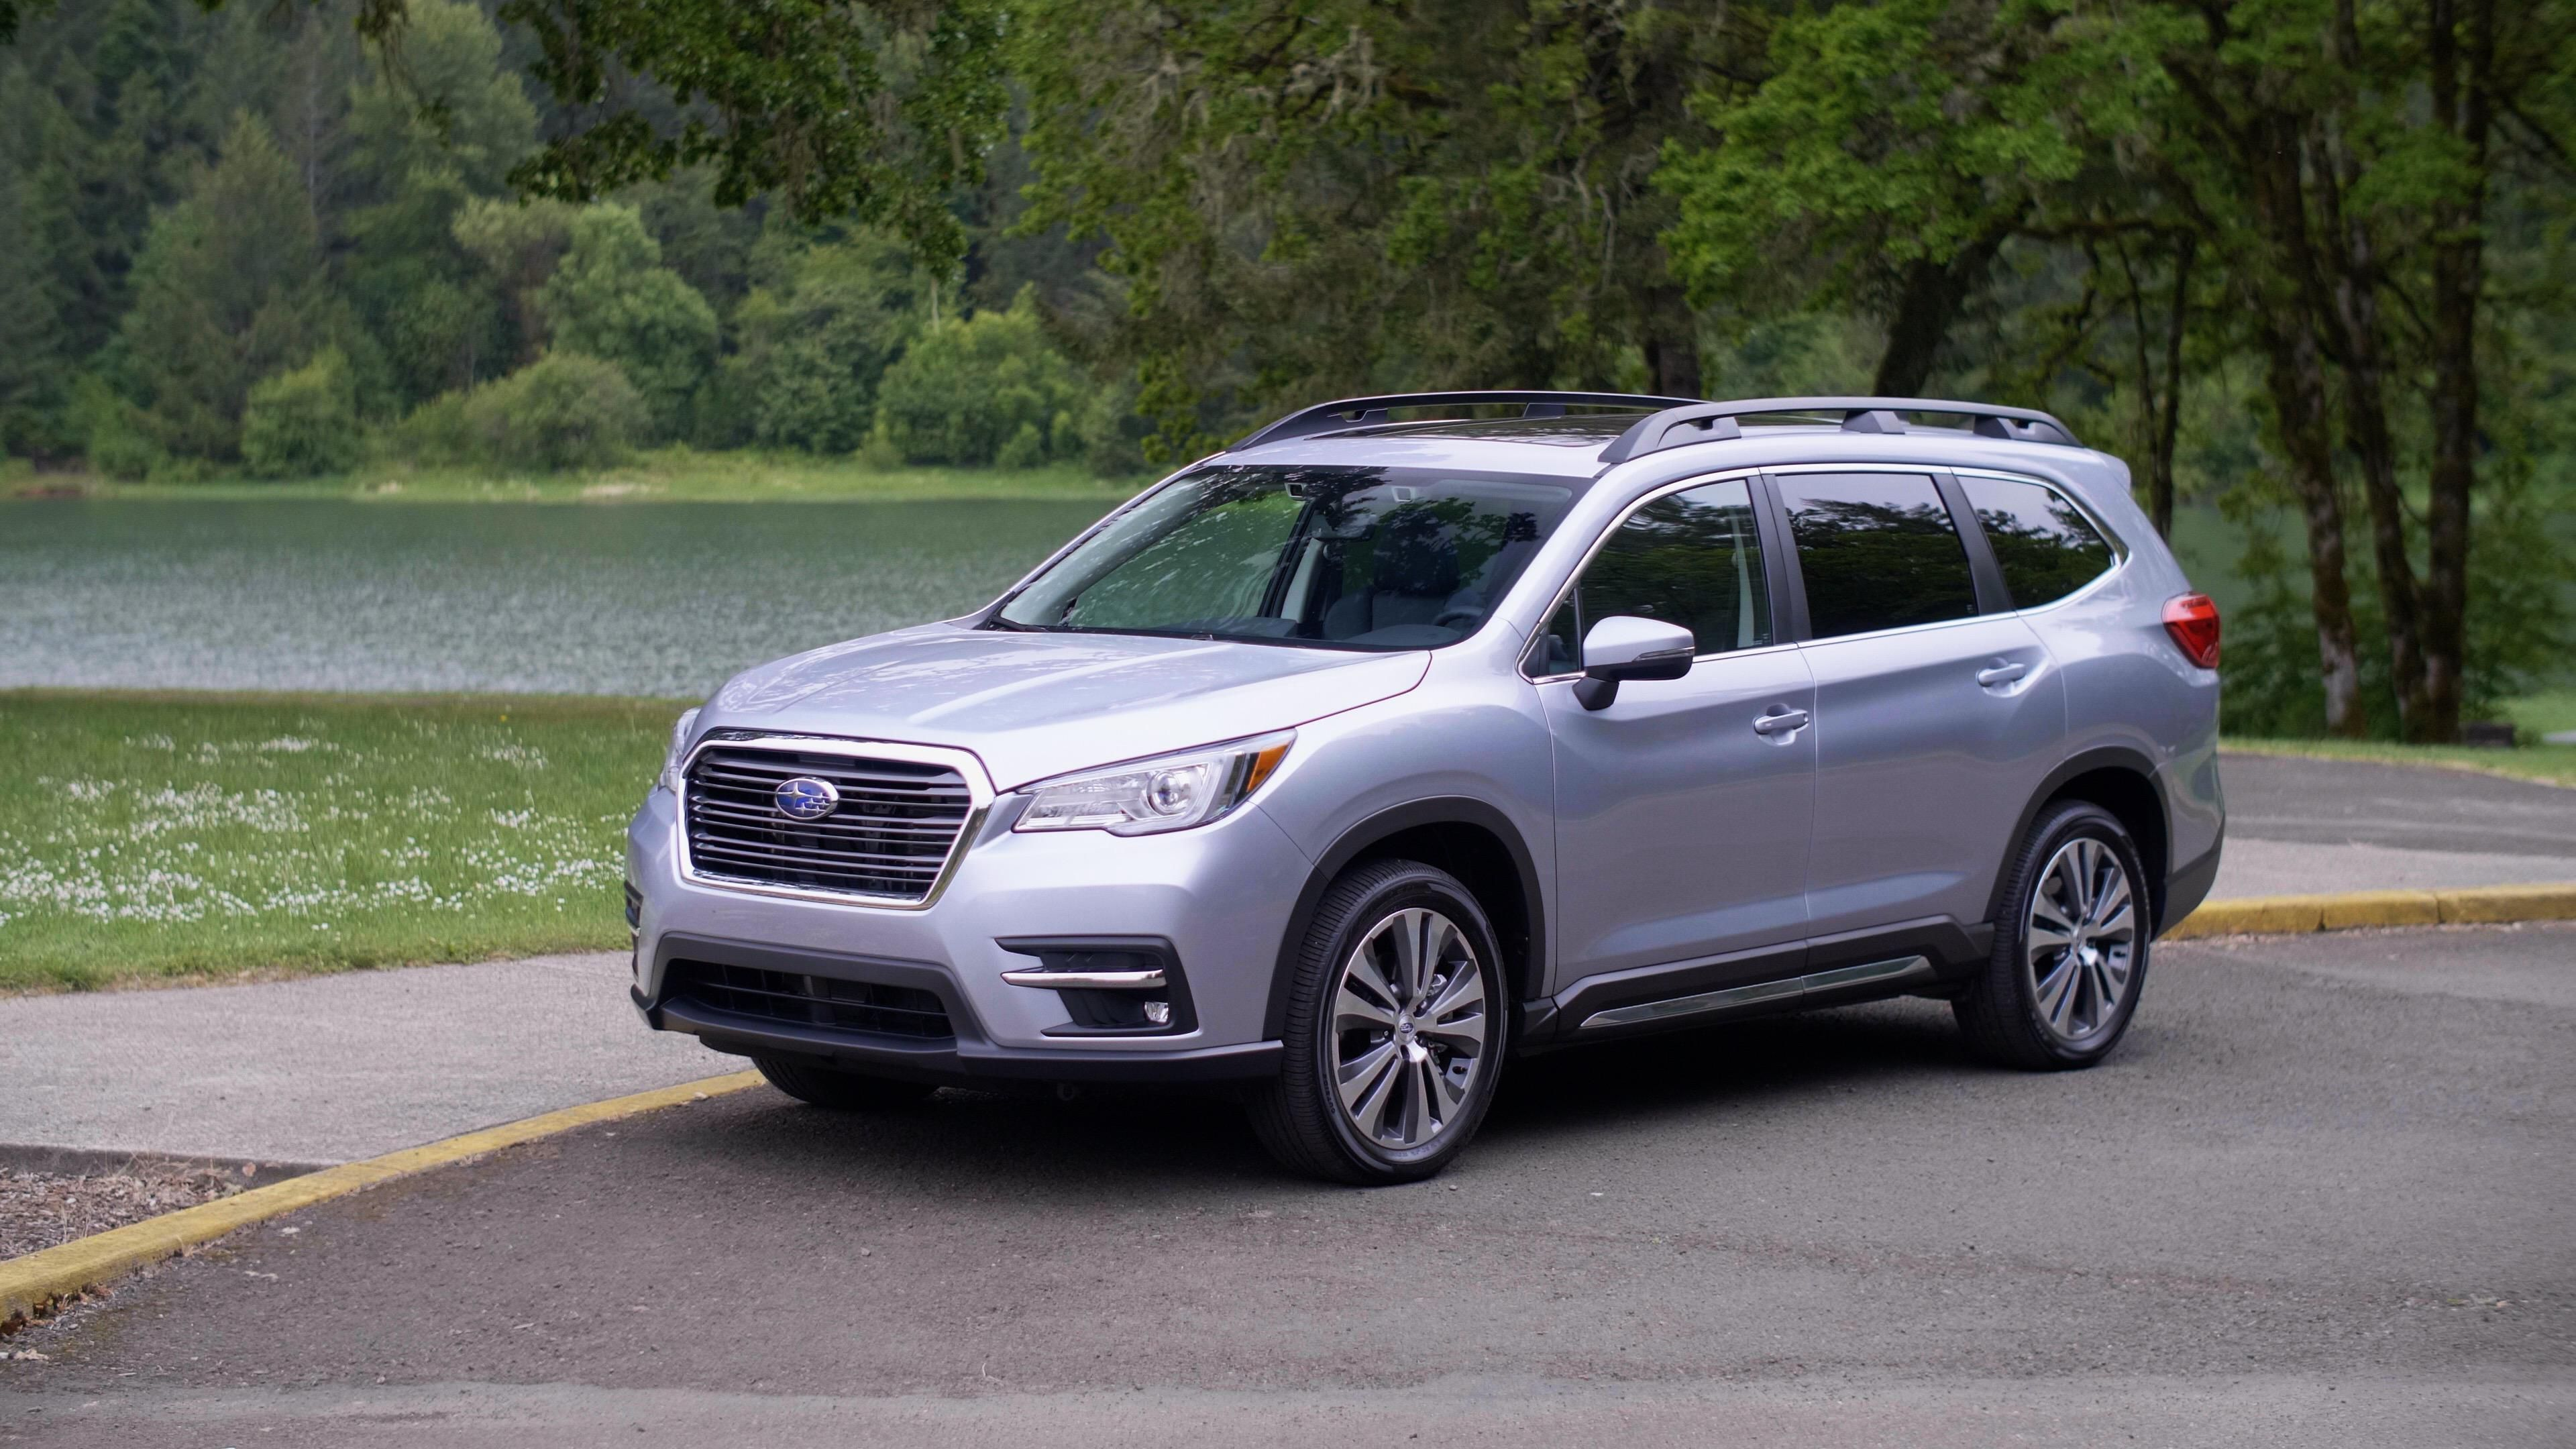 Top Subaru Diesel 2019 Images Subaru Car Review Car